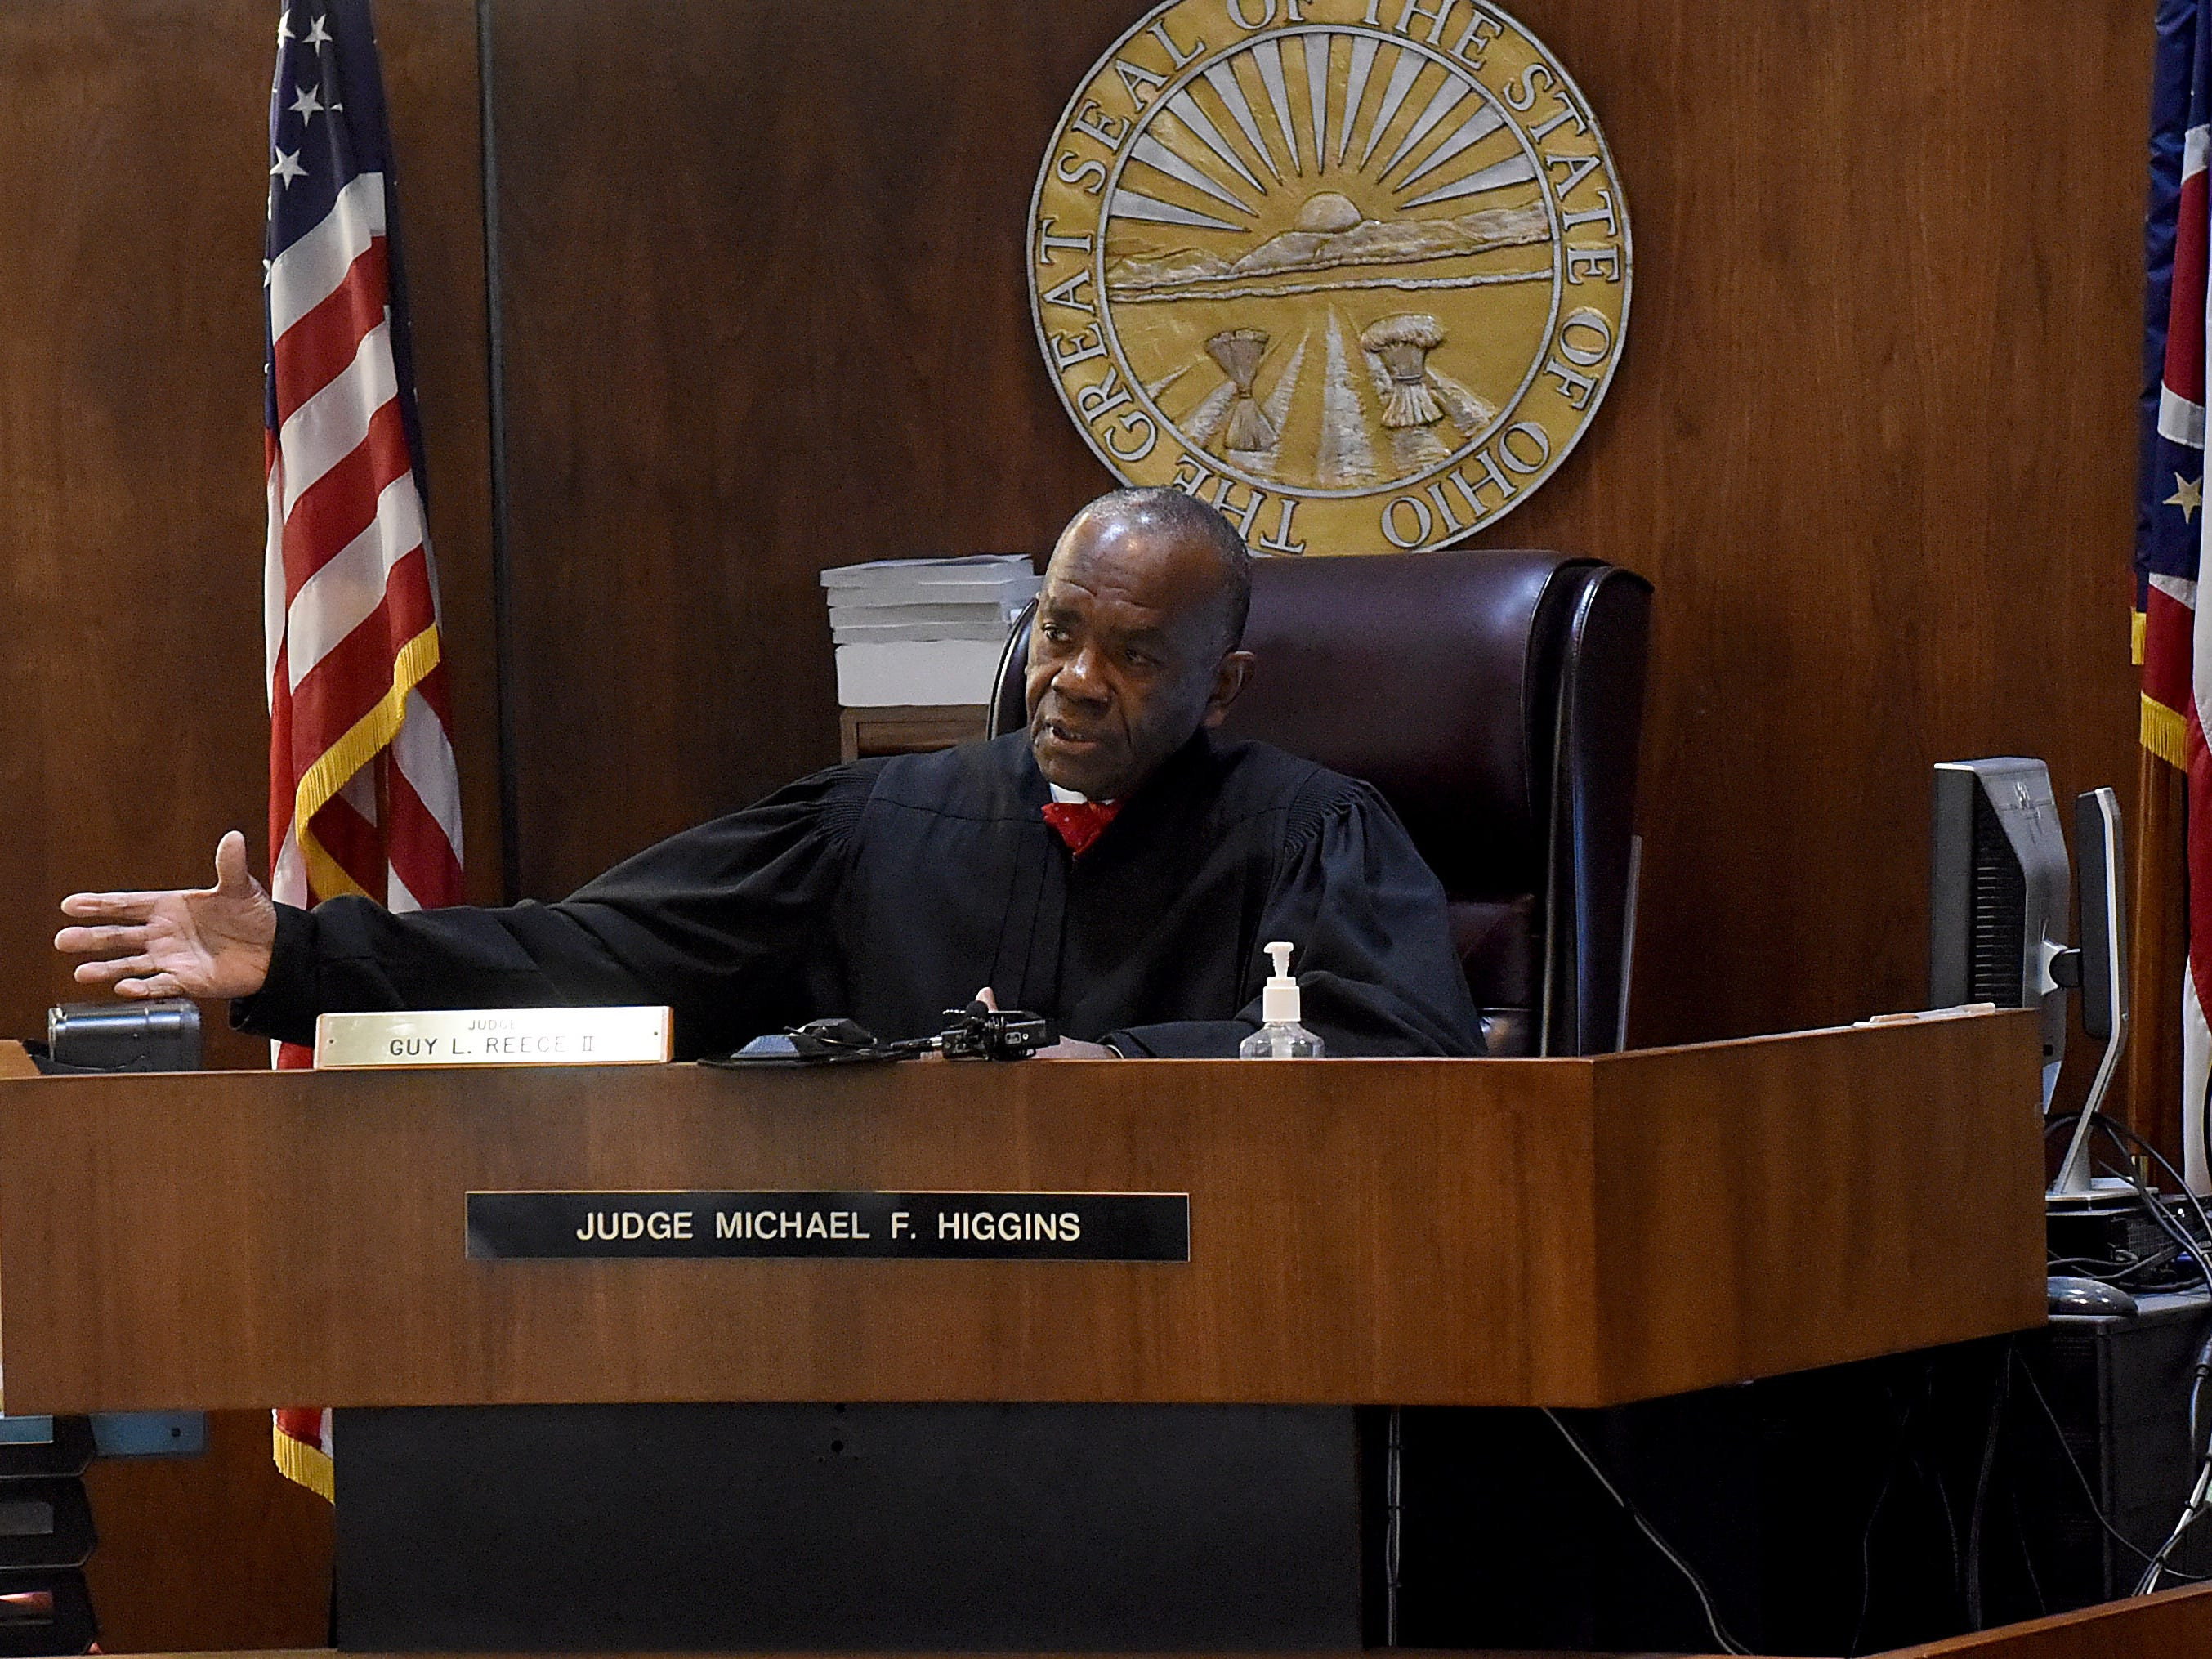 Visiting Judge Guy Reece II, from Franklin County, finds Newark Police Chief Barry Connell guilty of passing a stopped school bus and imposes a $100 fine in court costs.